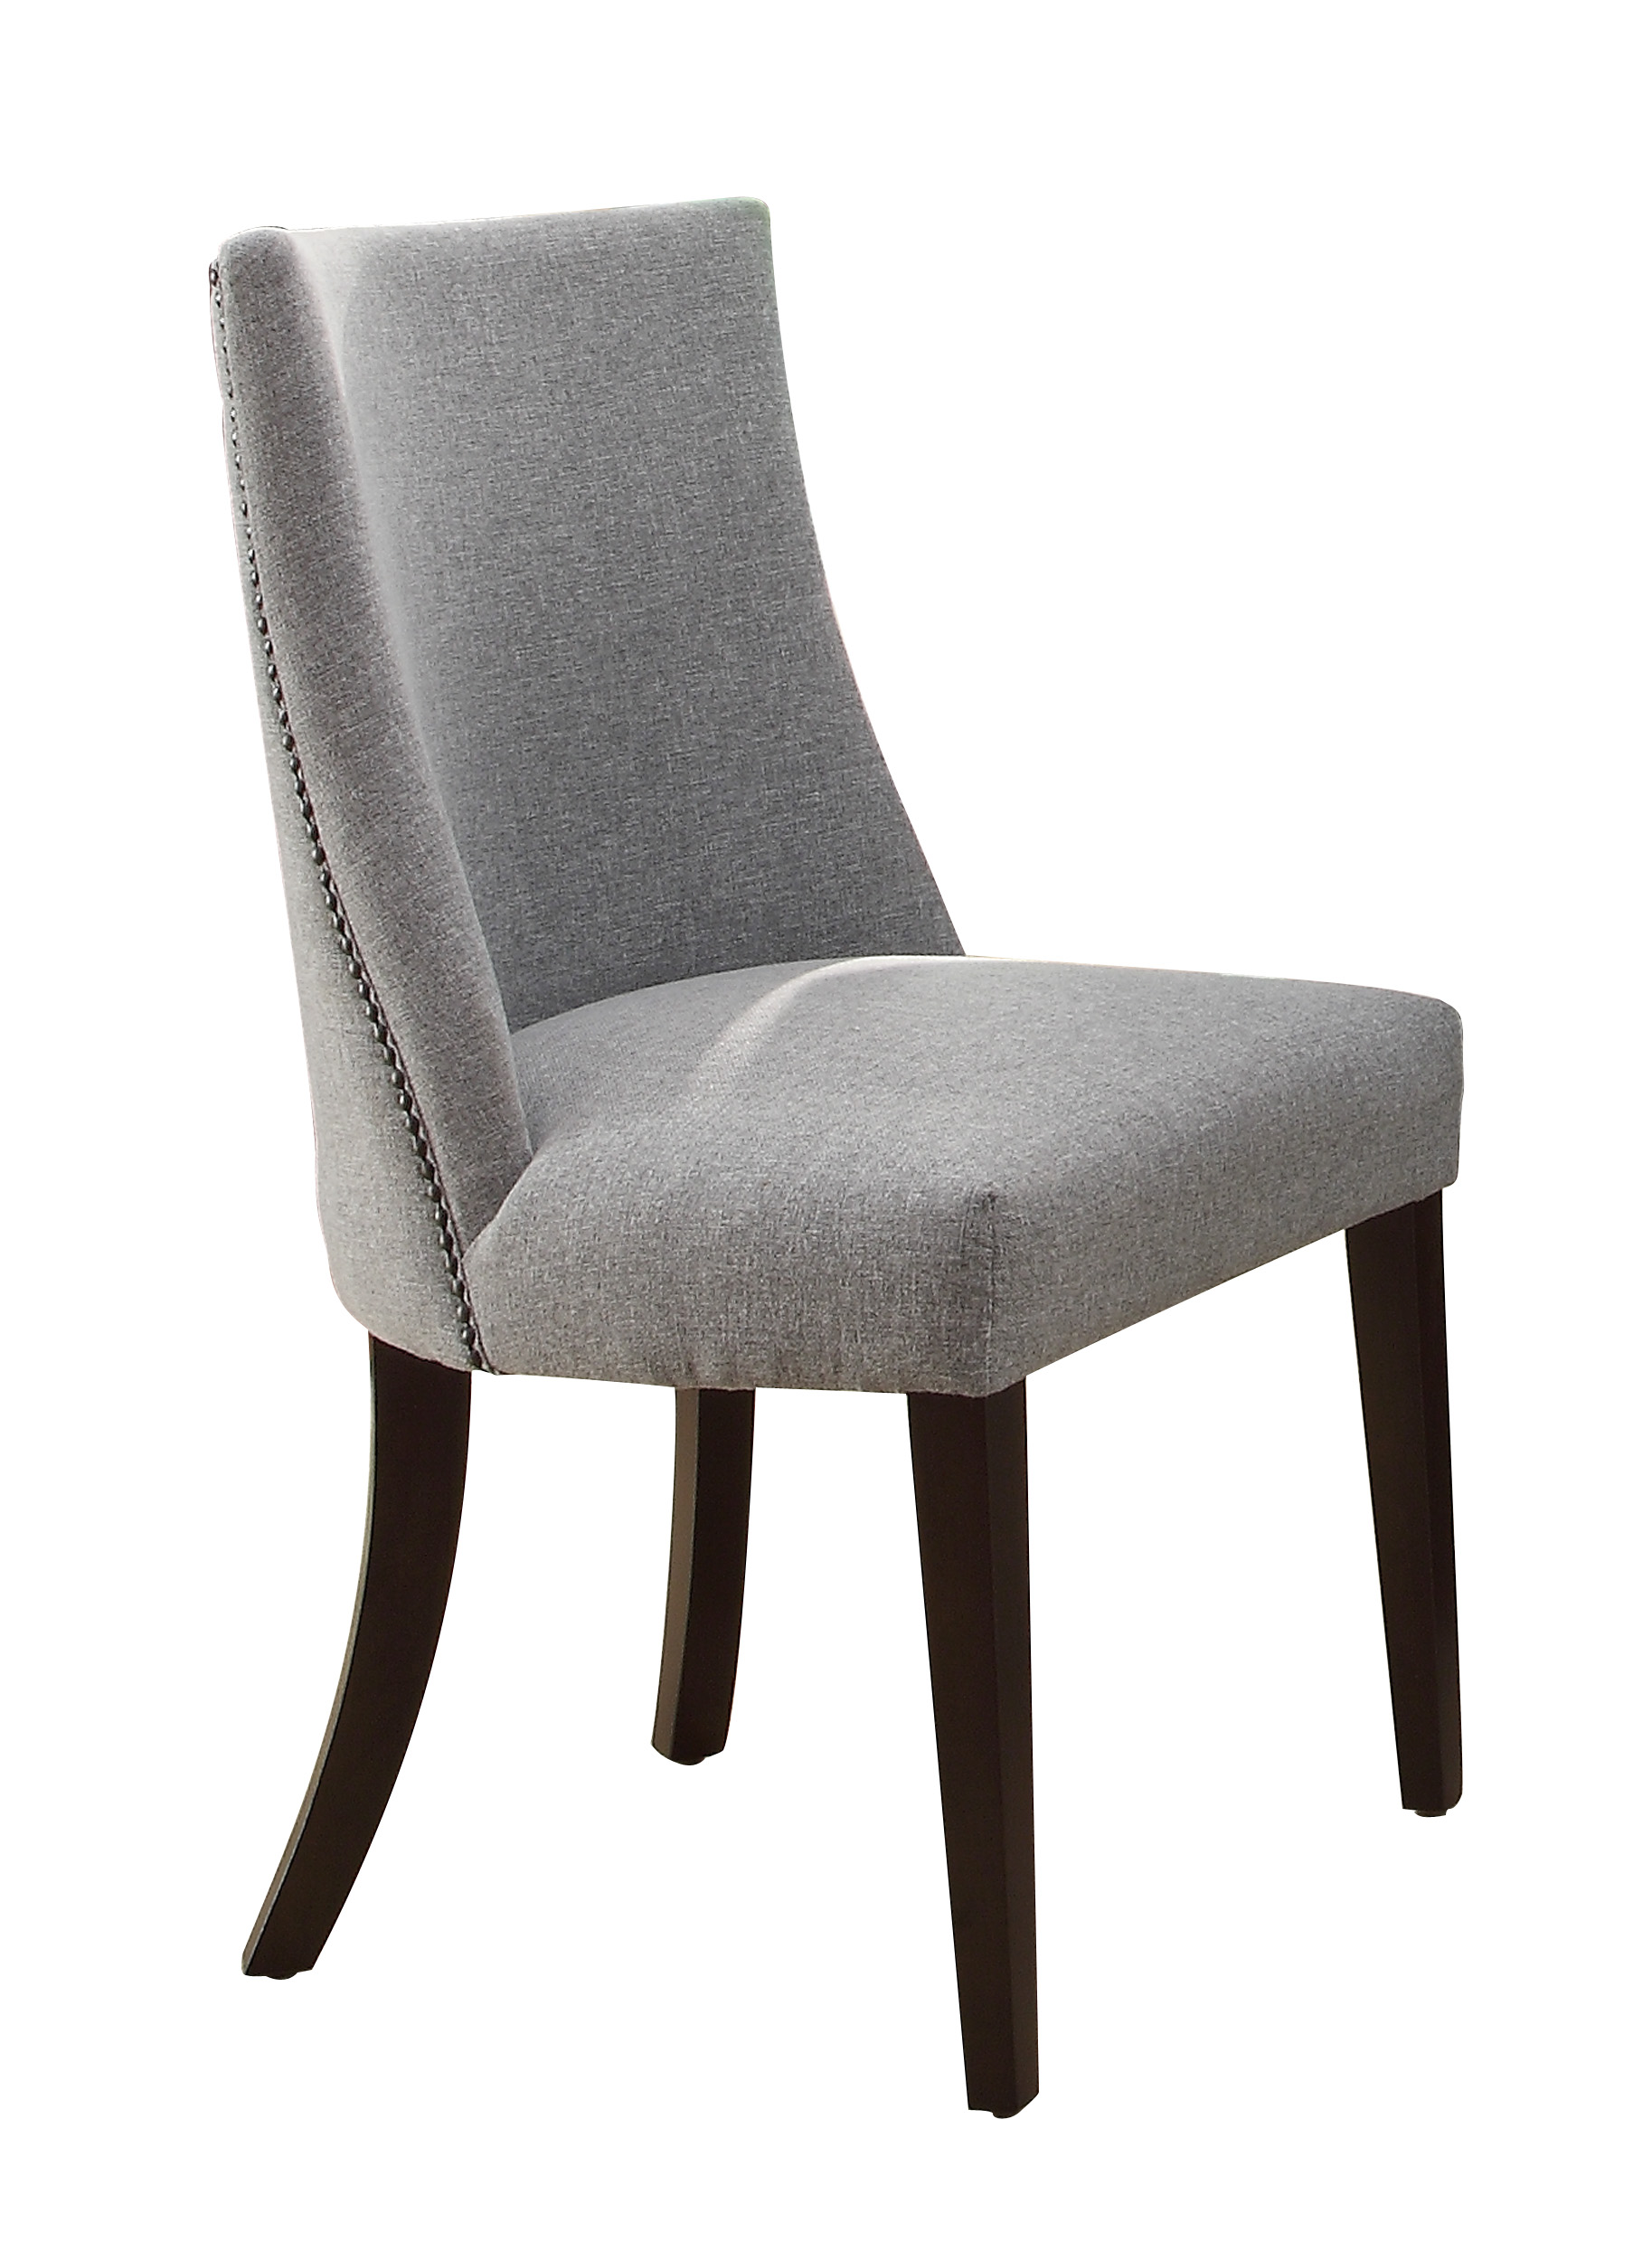 Chicago Grey Upholstered Side Dining Chair Set of 2 : 2588s nobg from abodeandcompany.com size 1827 x 2500 jpeg 545kB